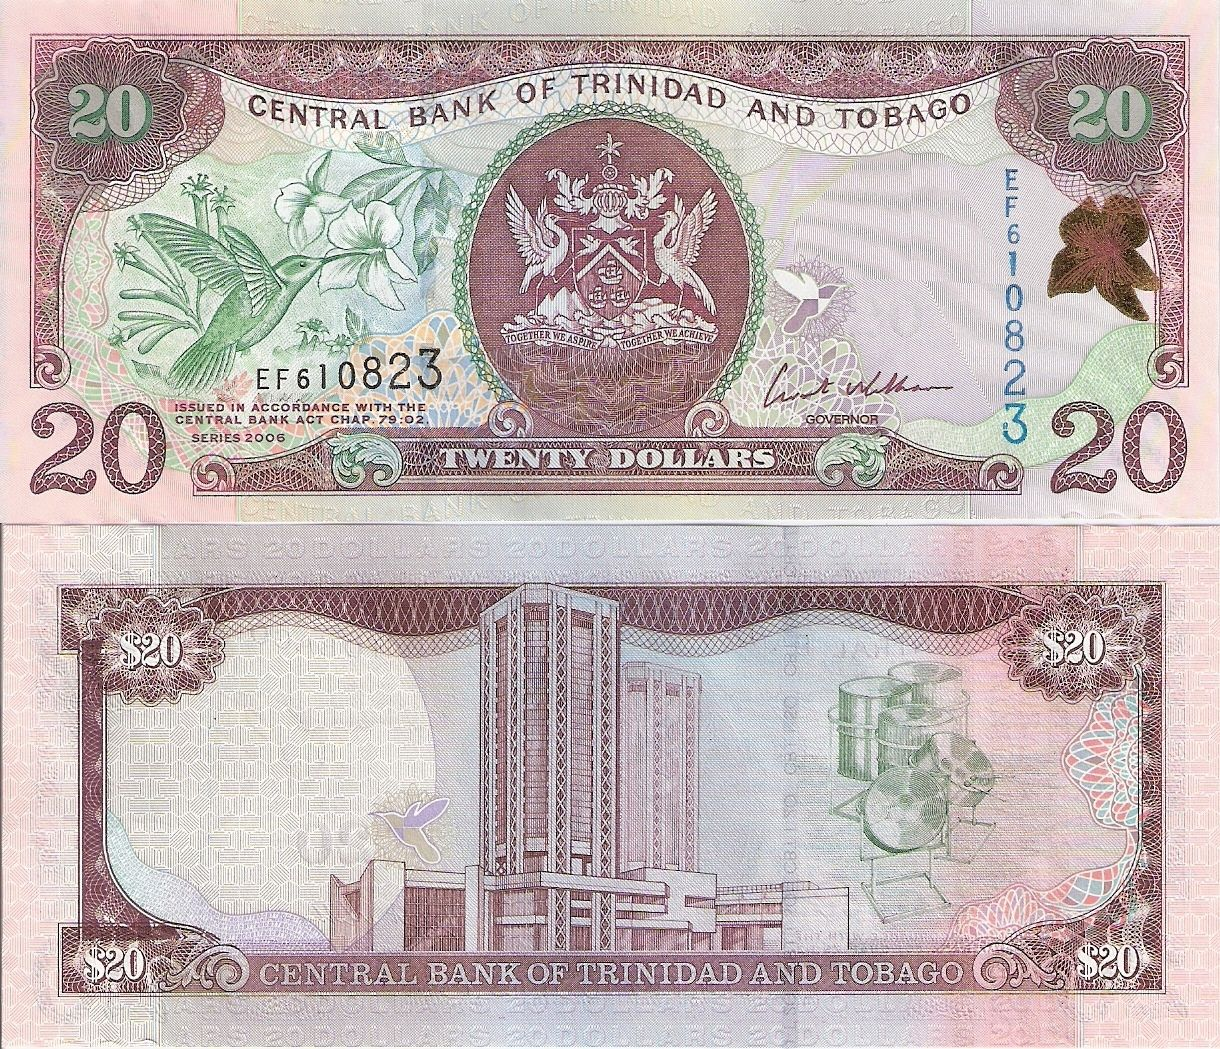 Trinidad 20 Dollars Banknote World Currency North